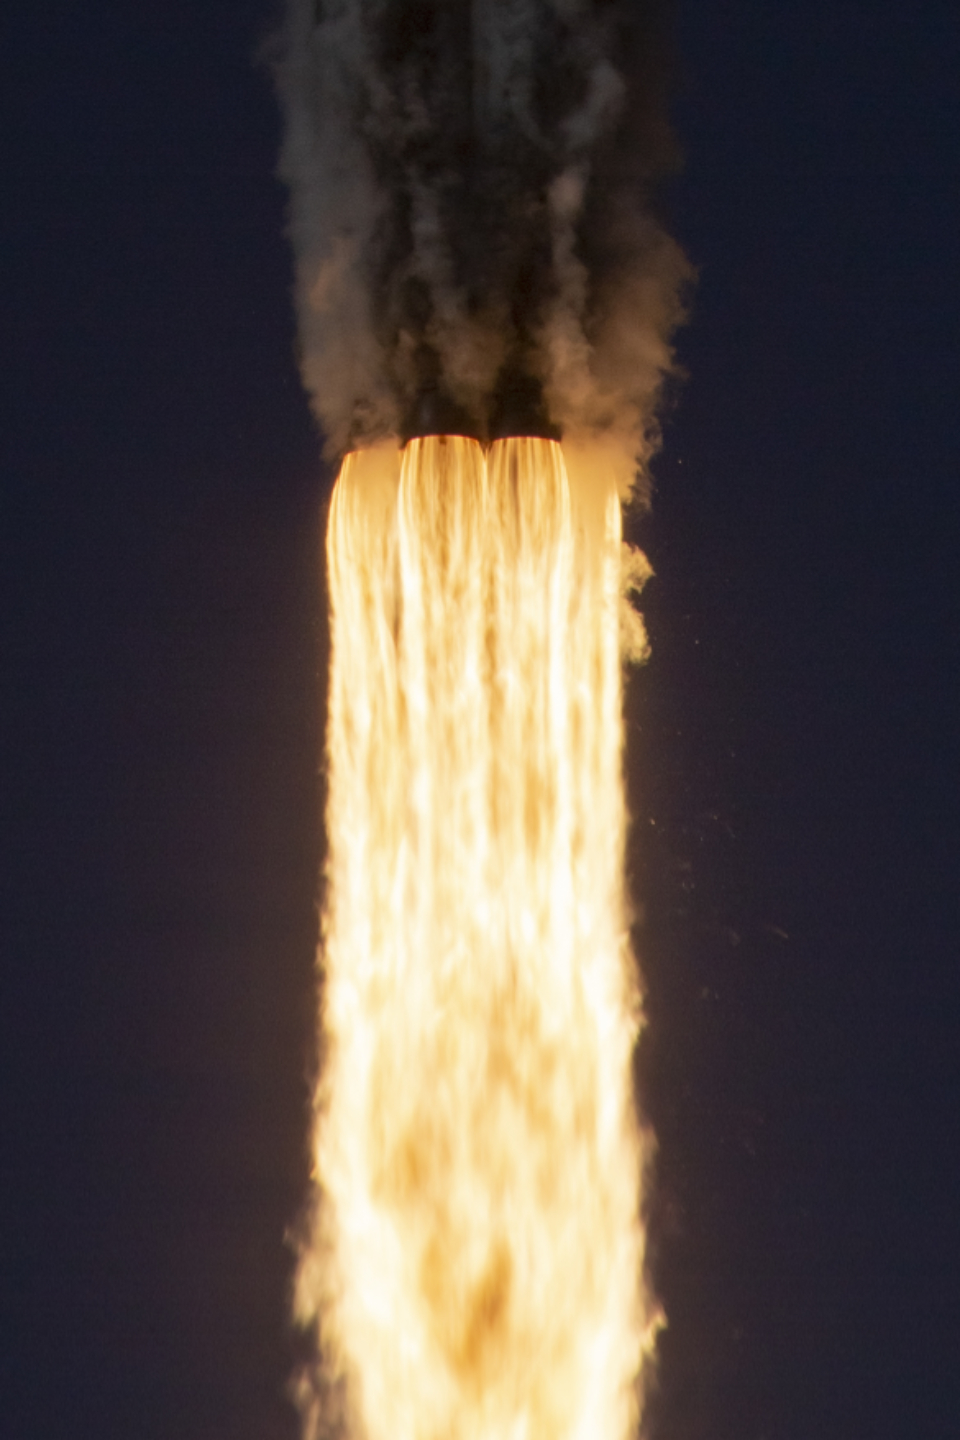 rocket liftoff fire flames hot spaceship space power speed movement travel launch advanced technology spacex yellow fly flight science spacecraft